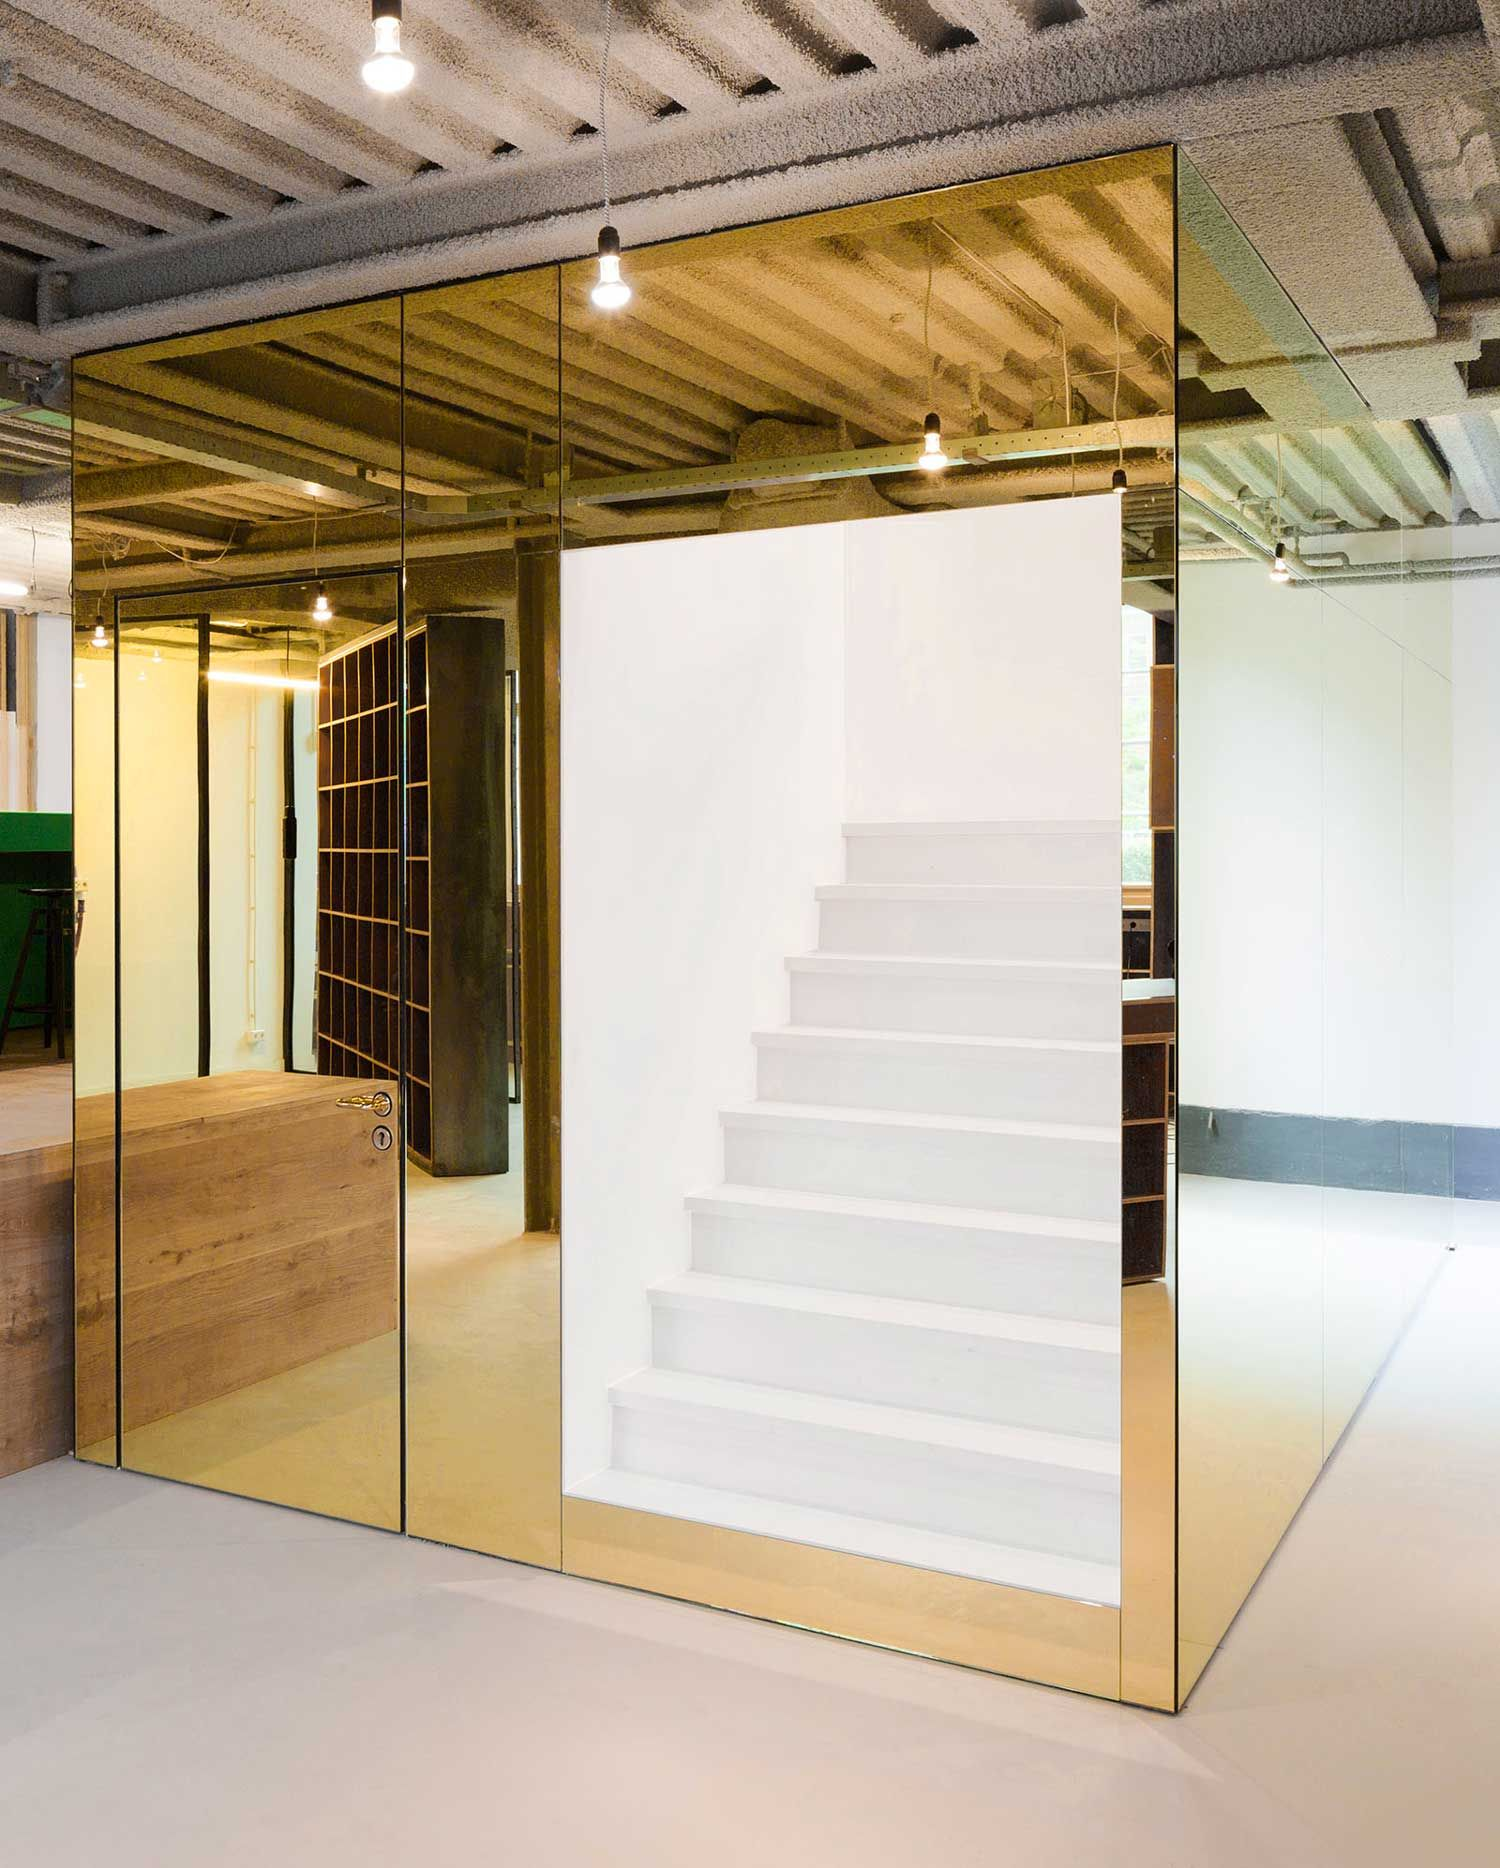 stories on design mealic interiors sid lee office by space encounters yellowtrace